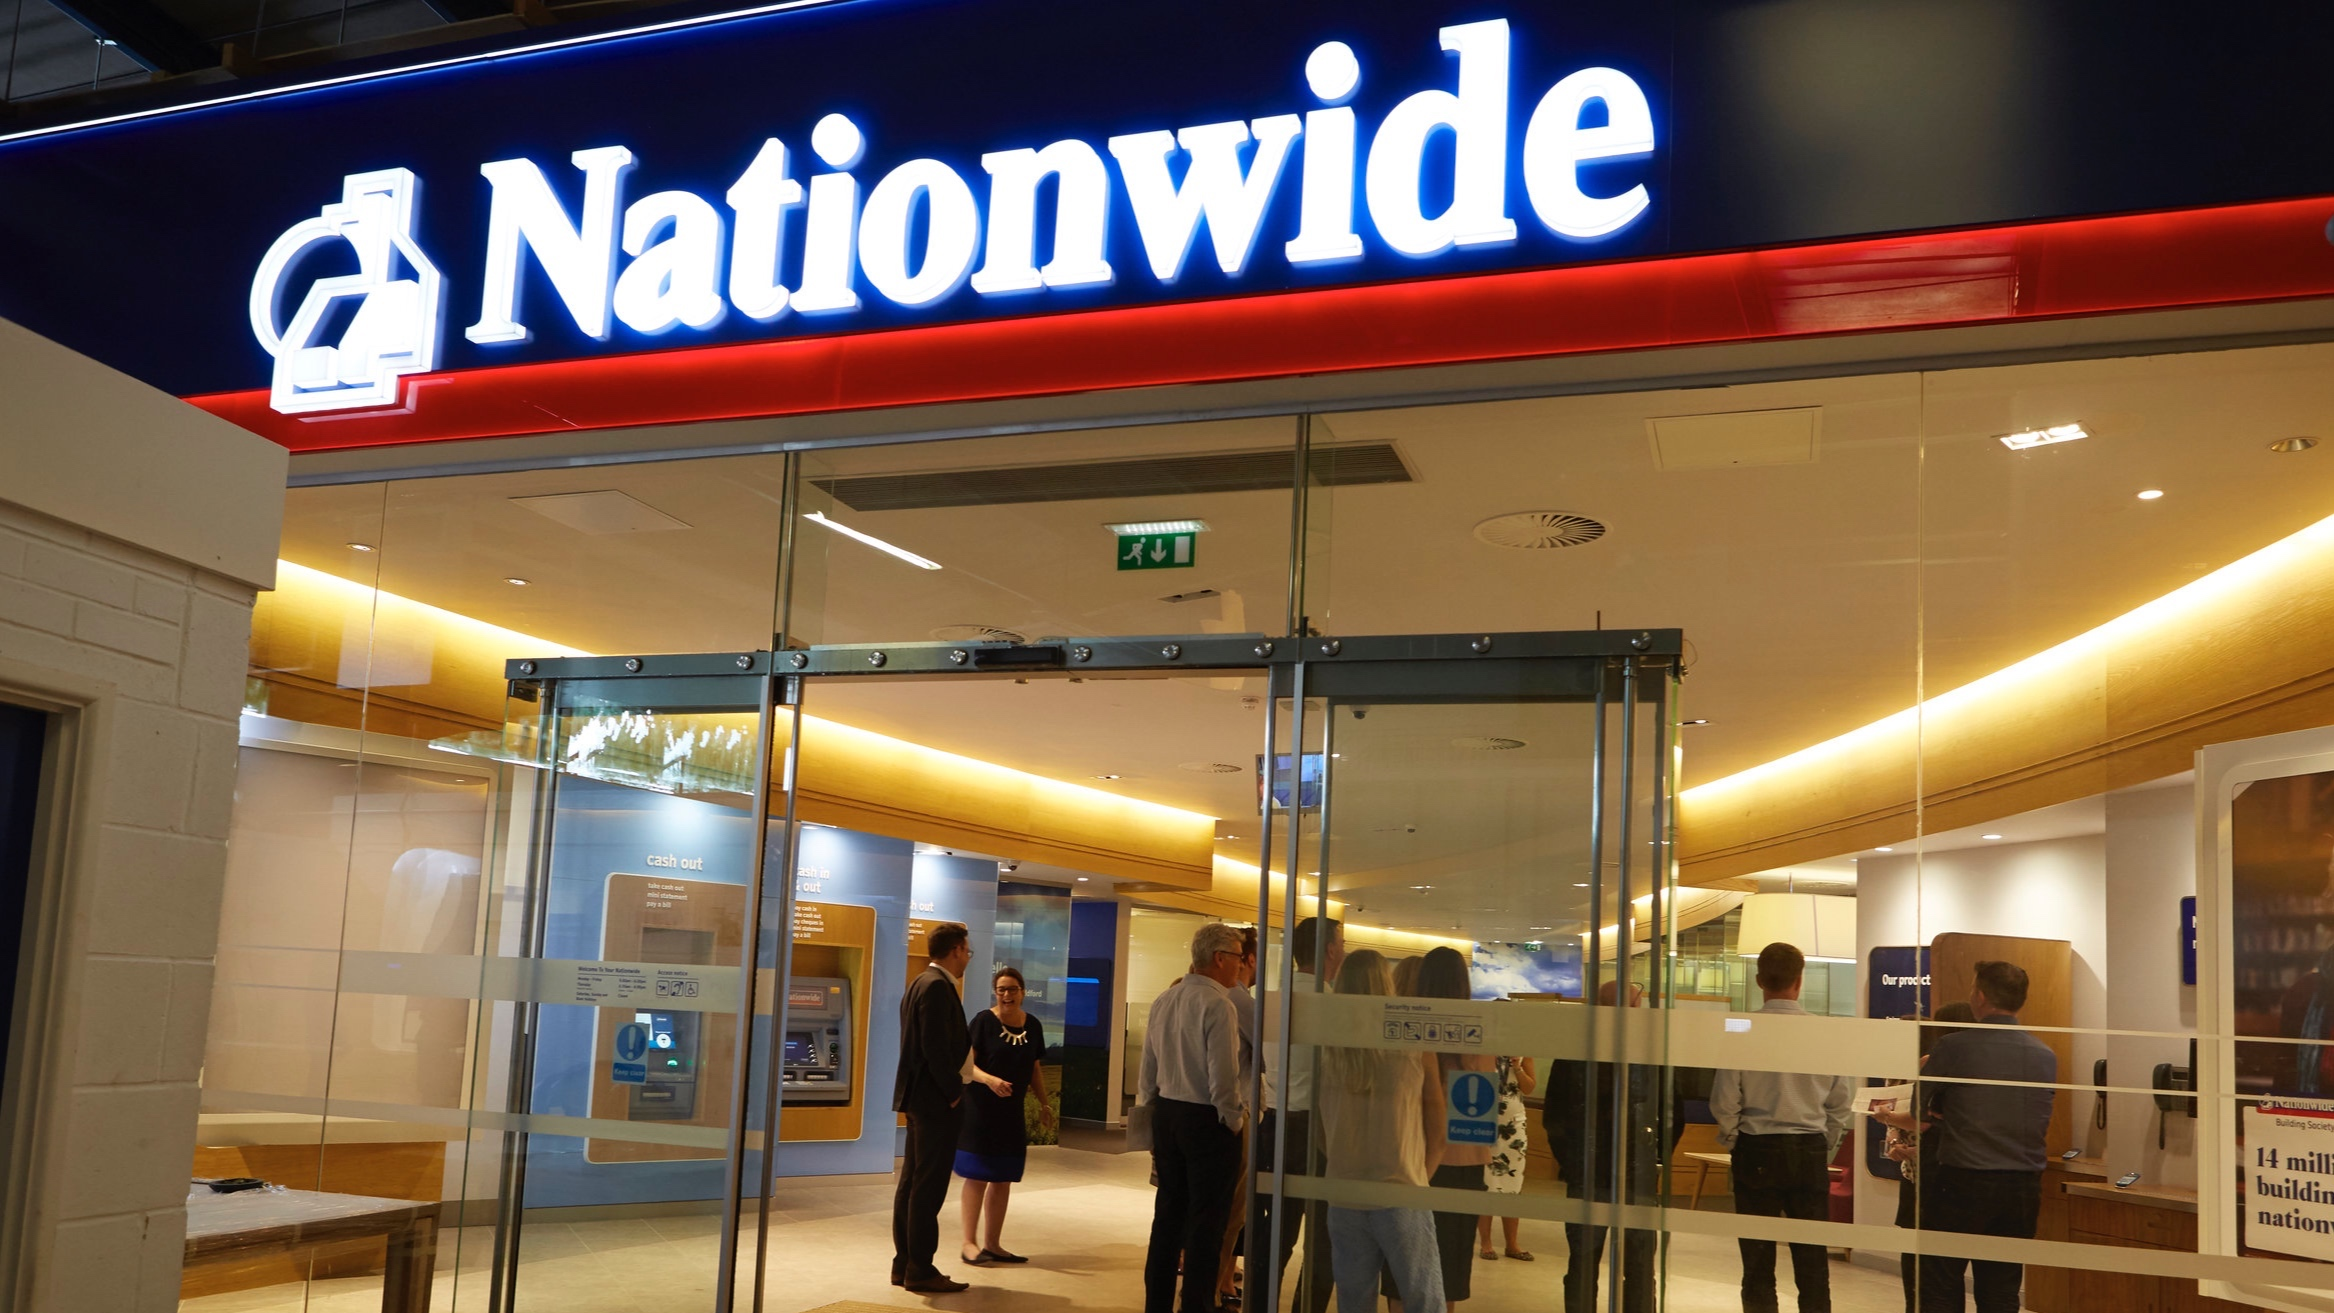 Nationwide - How to respond to new market entrants.